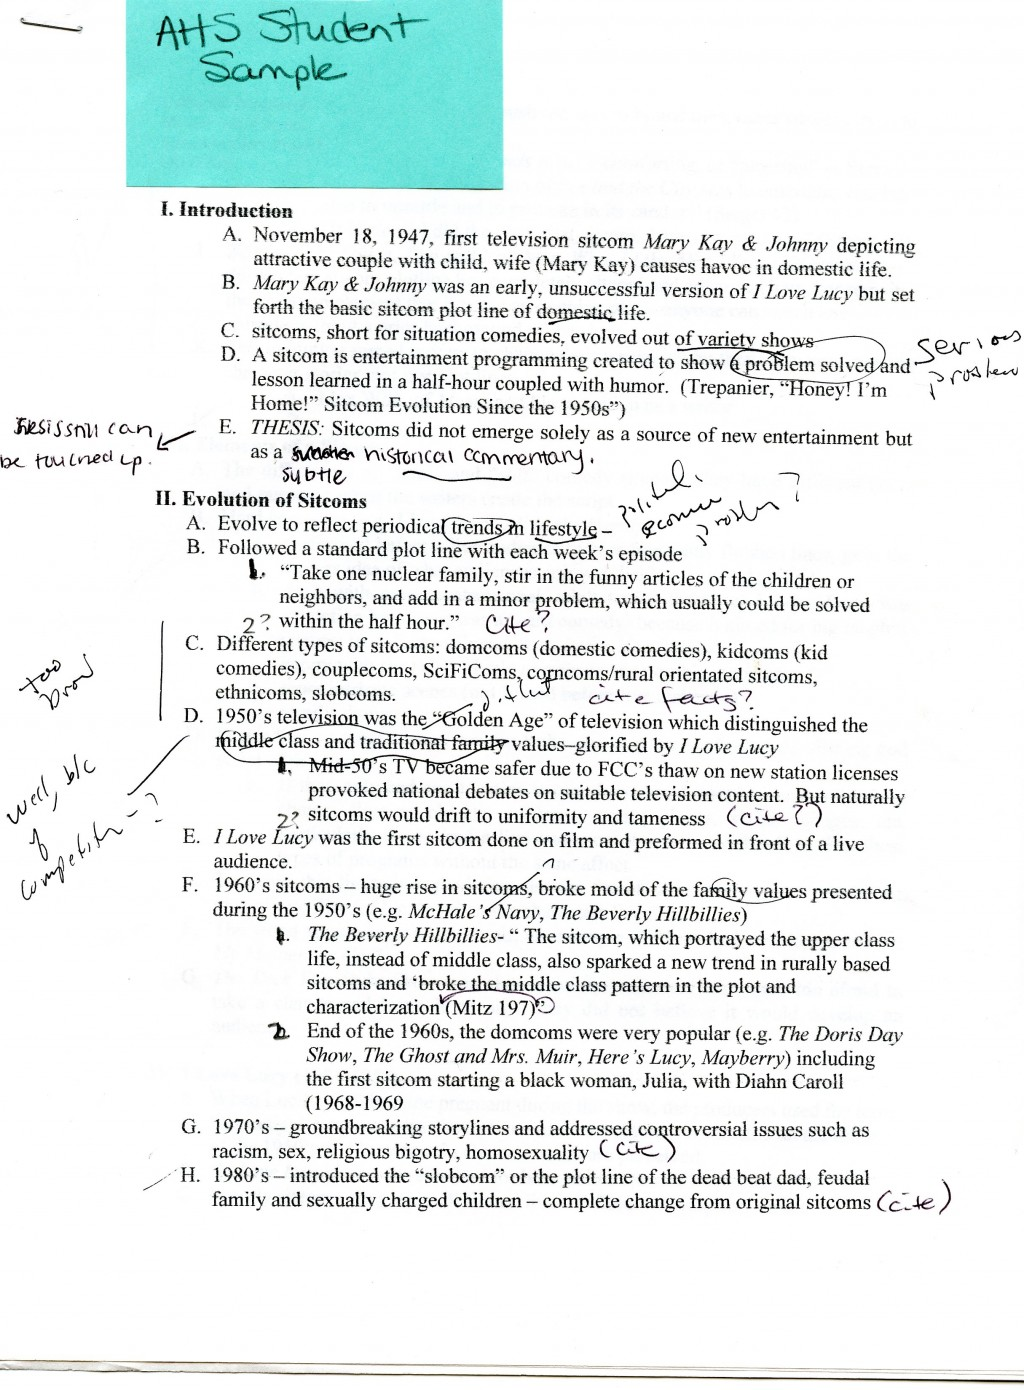 Topics for exploratory essays